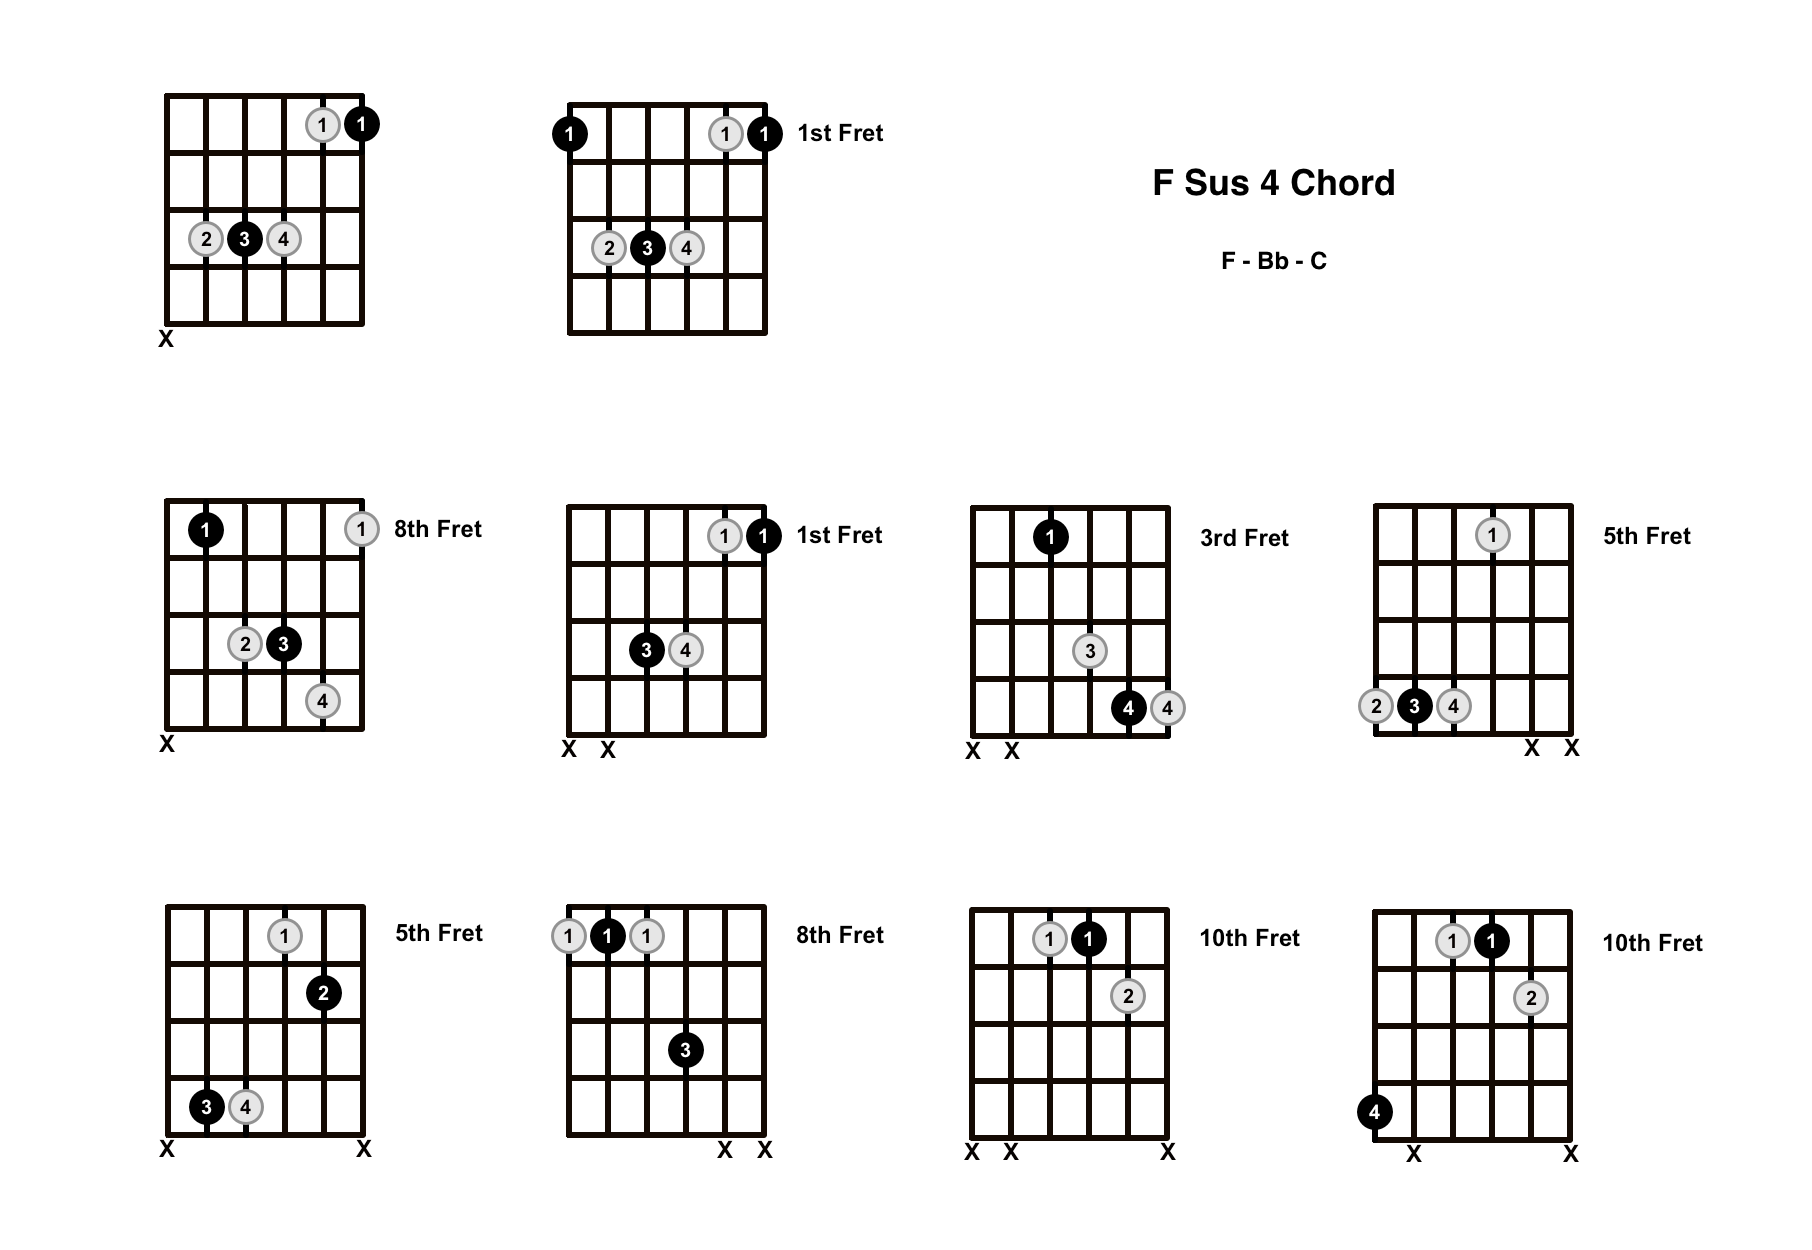 F Sus 4 Chord On The Guitar (F Suspended 4) – Diagrams, Finger Positions and Theory